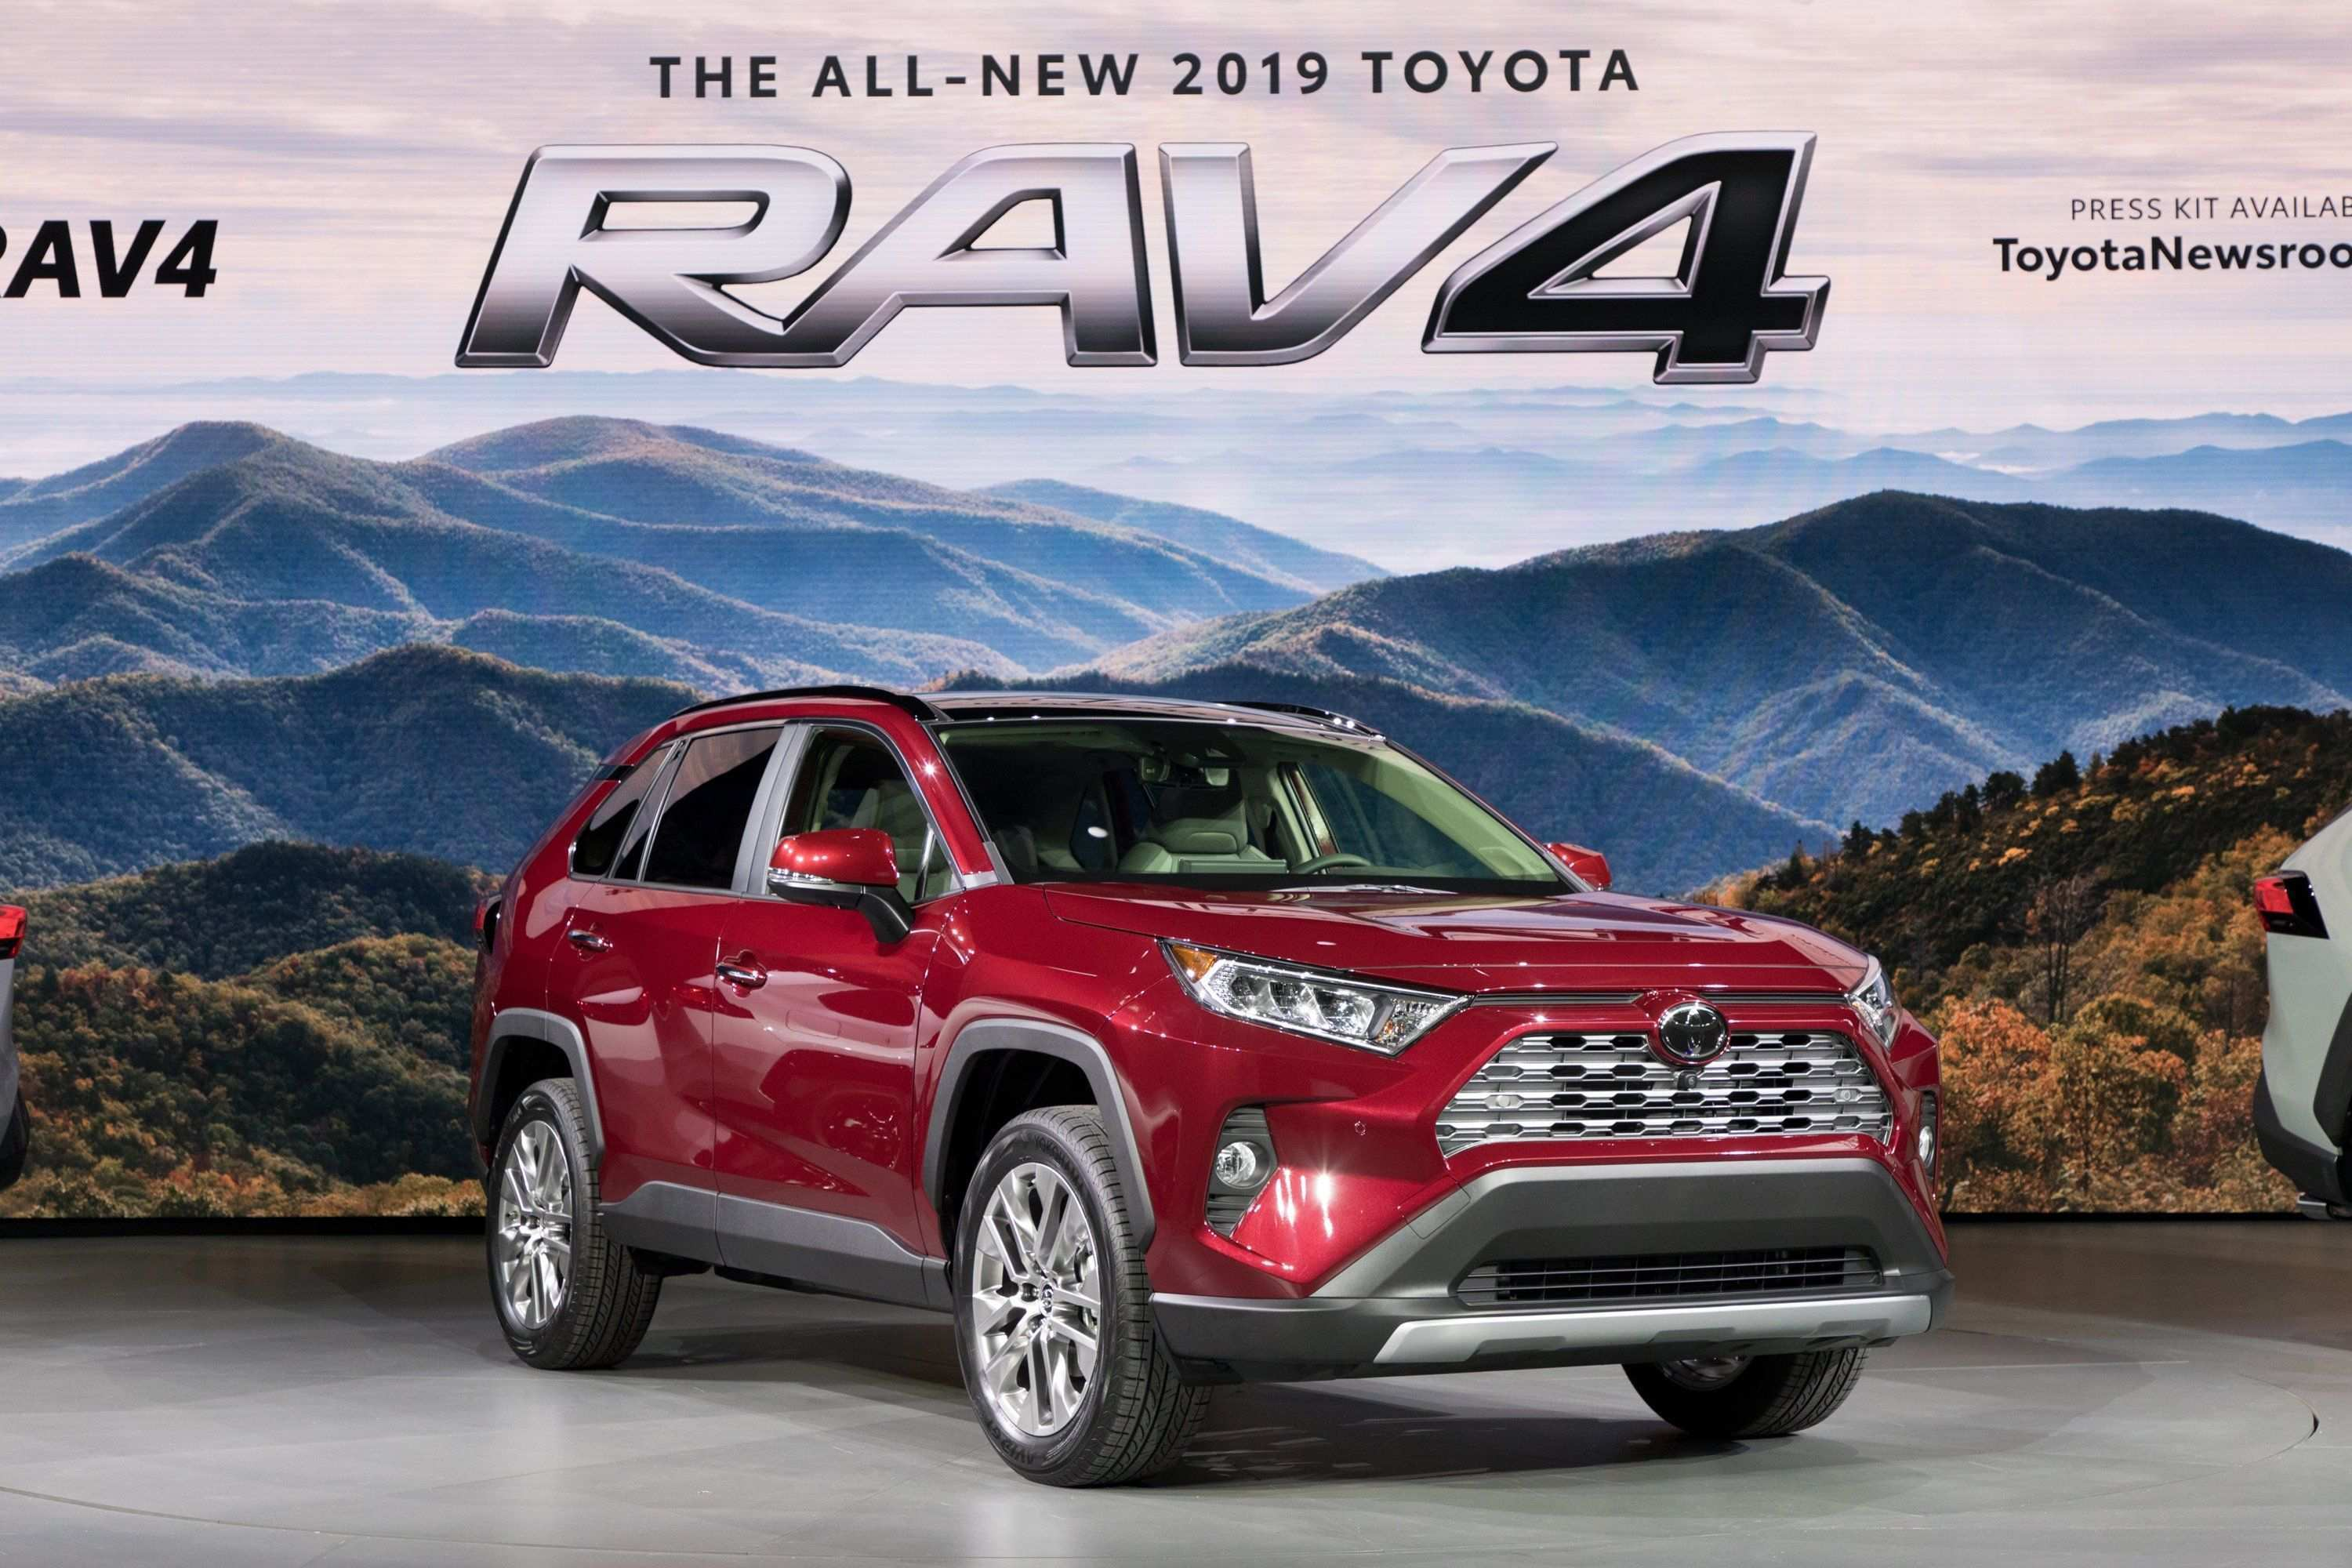 61 A 2019 Toyota Build And Price New Model And Performance